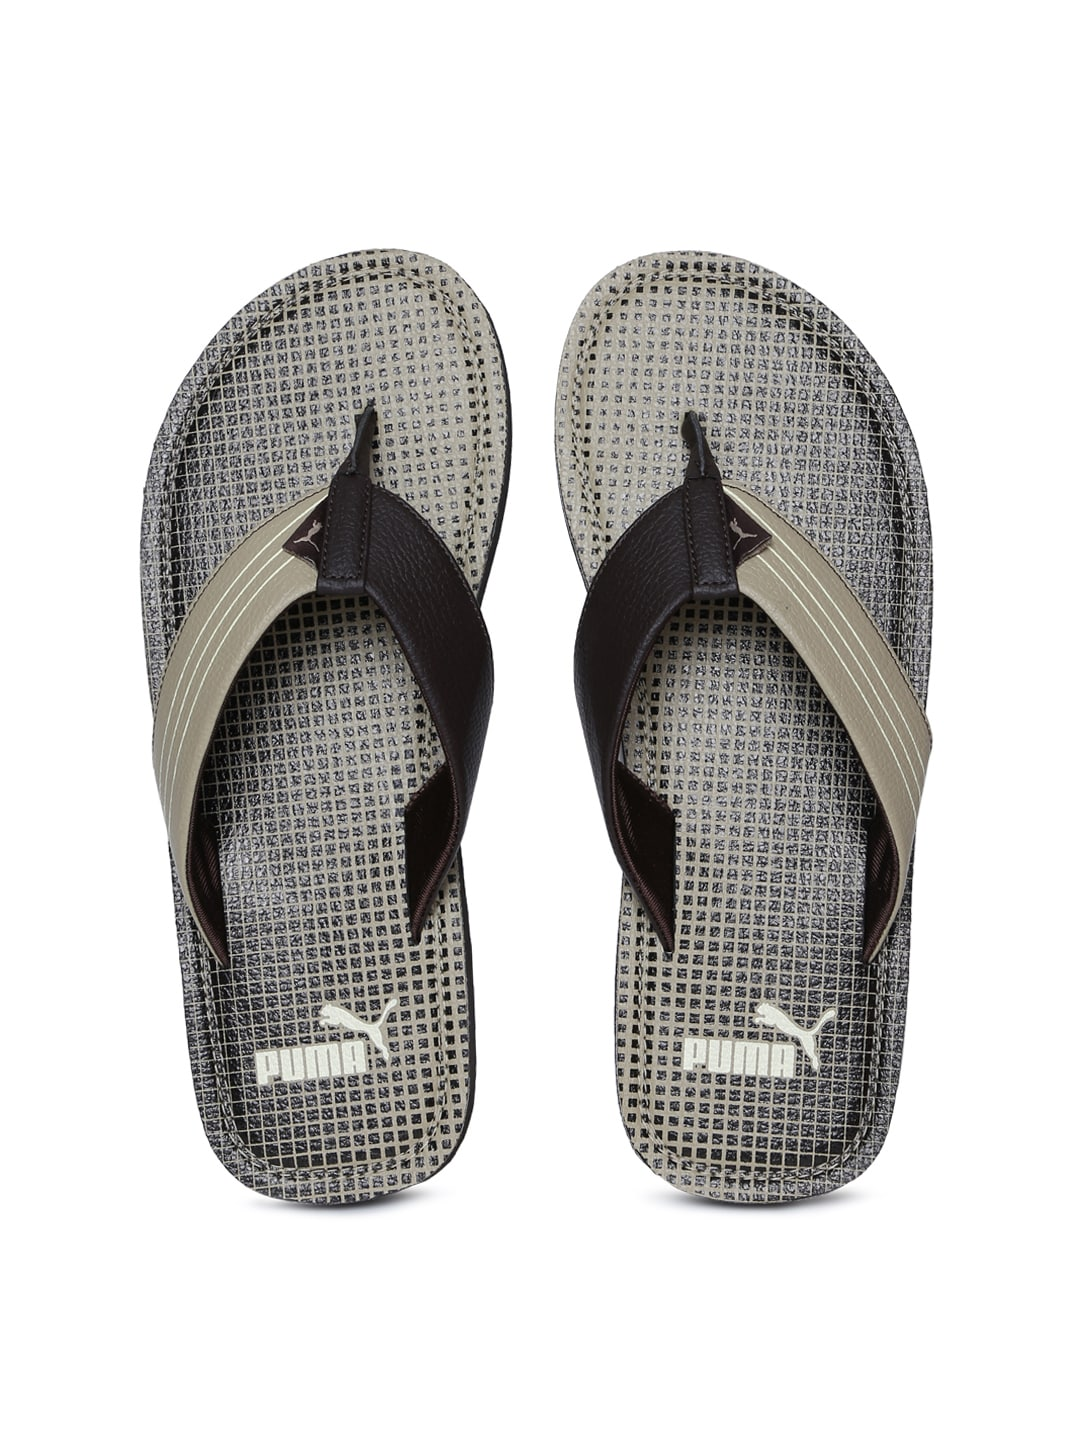 38ac3e31e3df Men s Puma Flip Flops - Buy Puma Flip Flops for Men Online in India